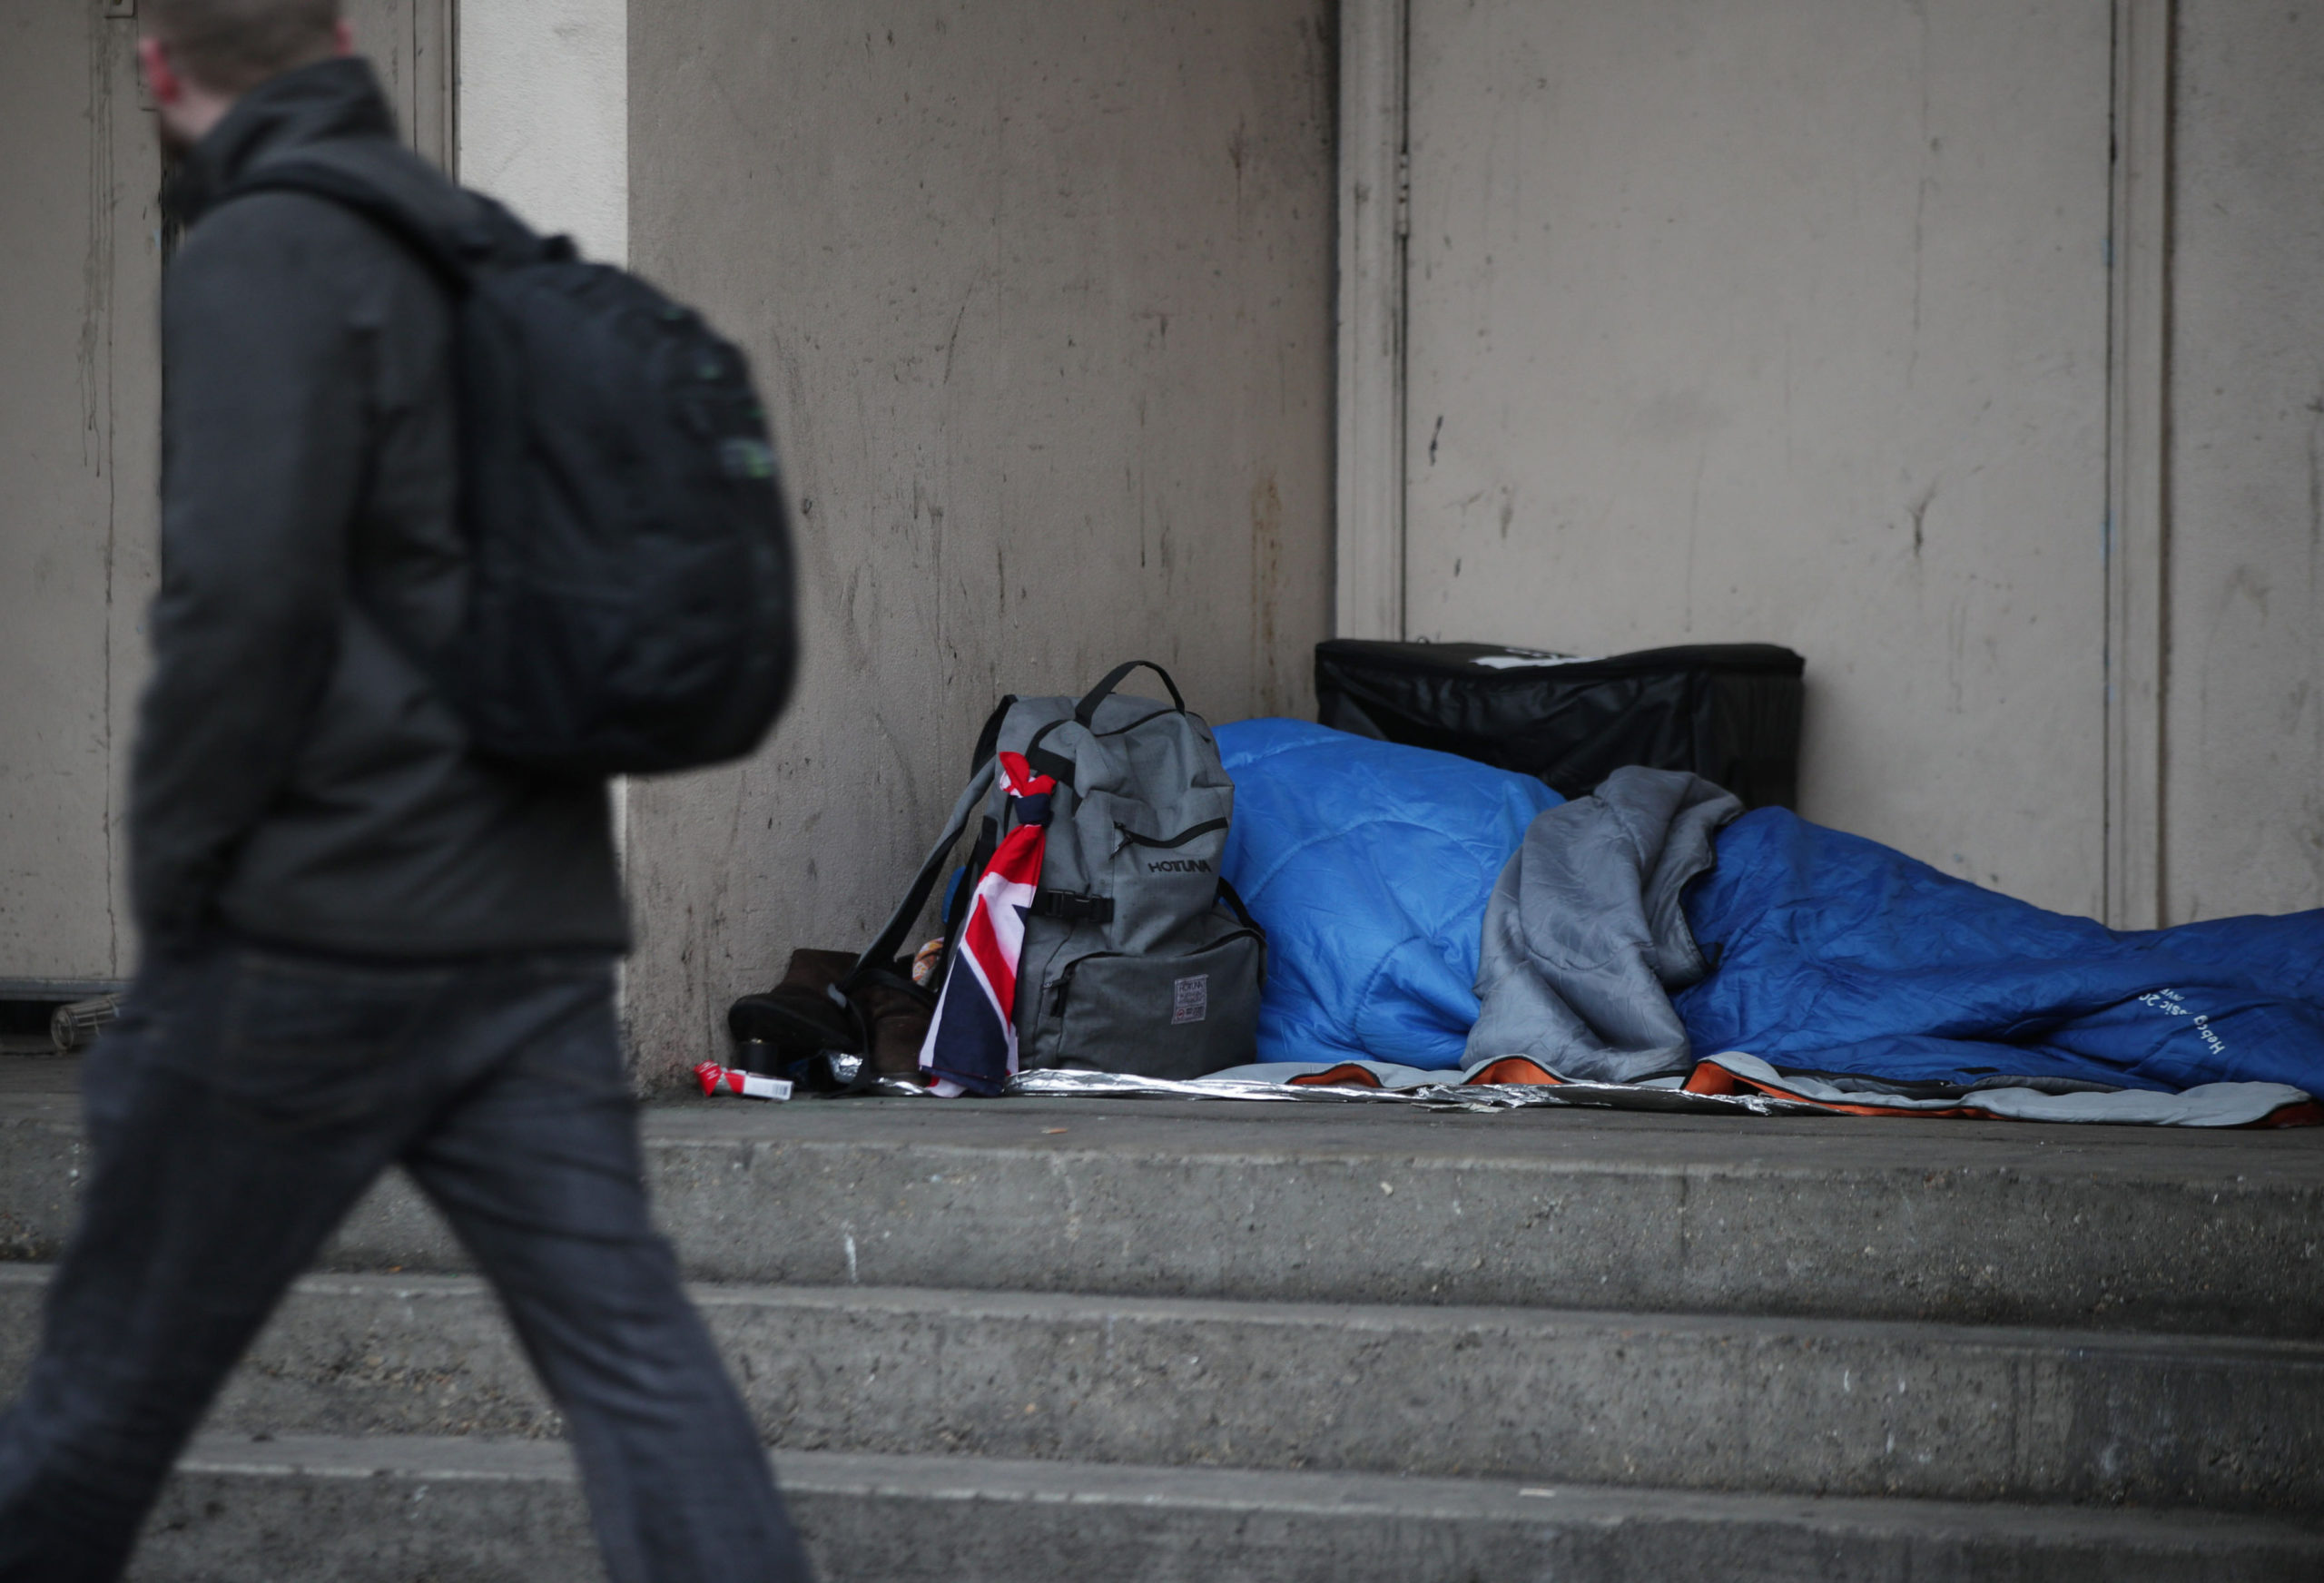 The figures suggest almost 200 people died while homeless in Scotland in 2018.